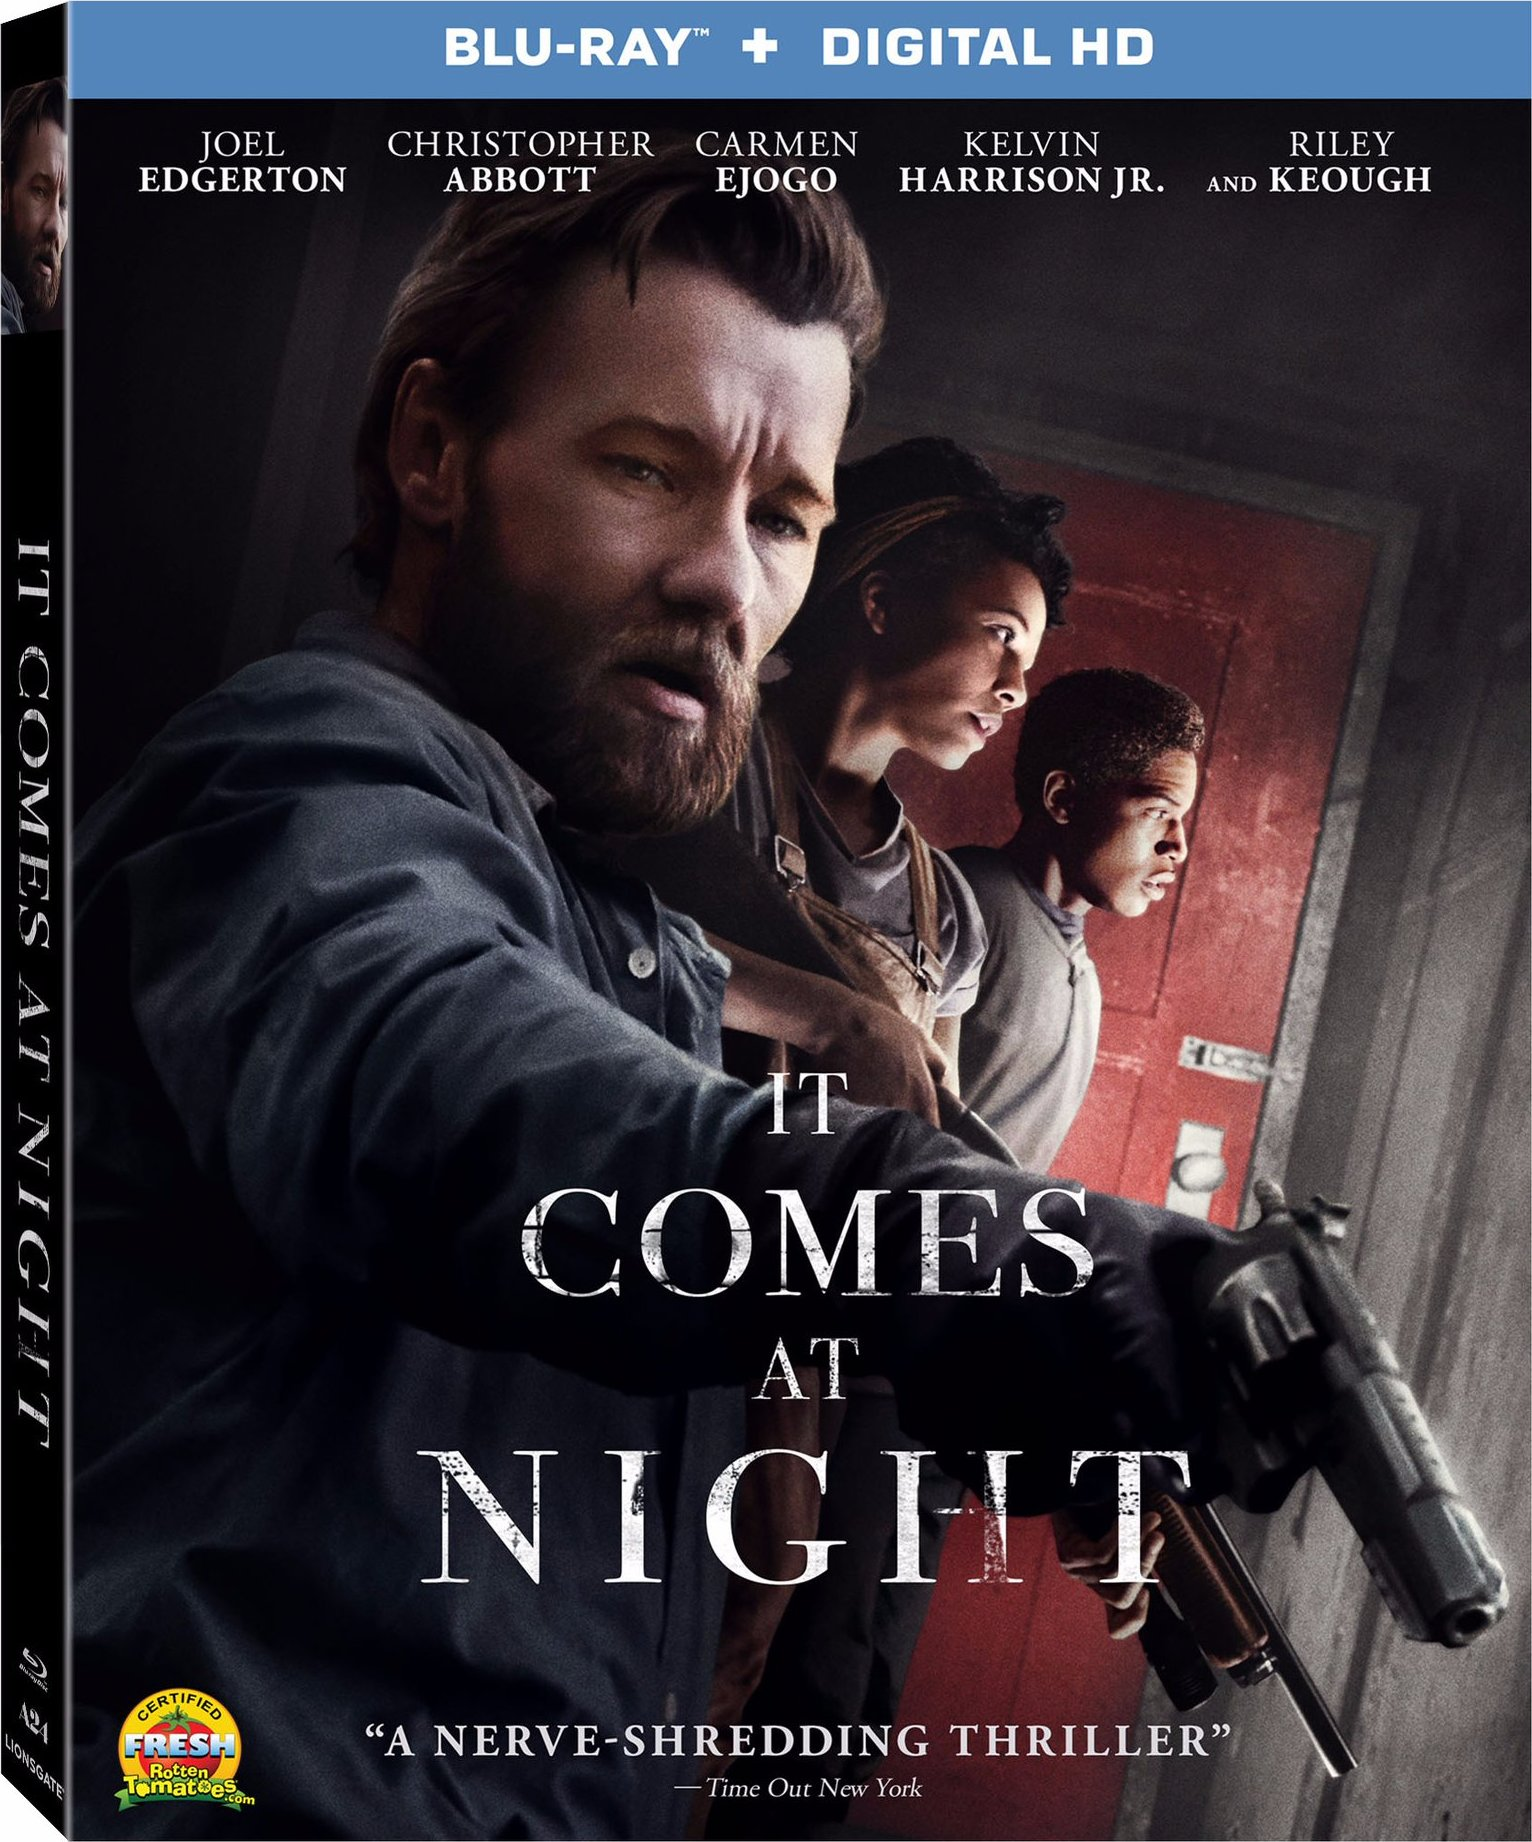 It Comes at Night (2017) poster image